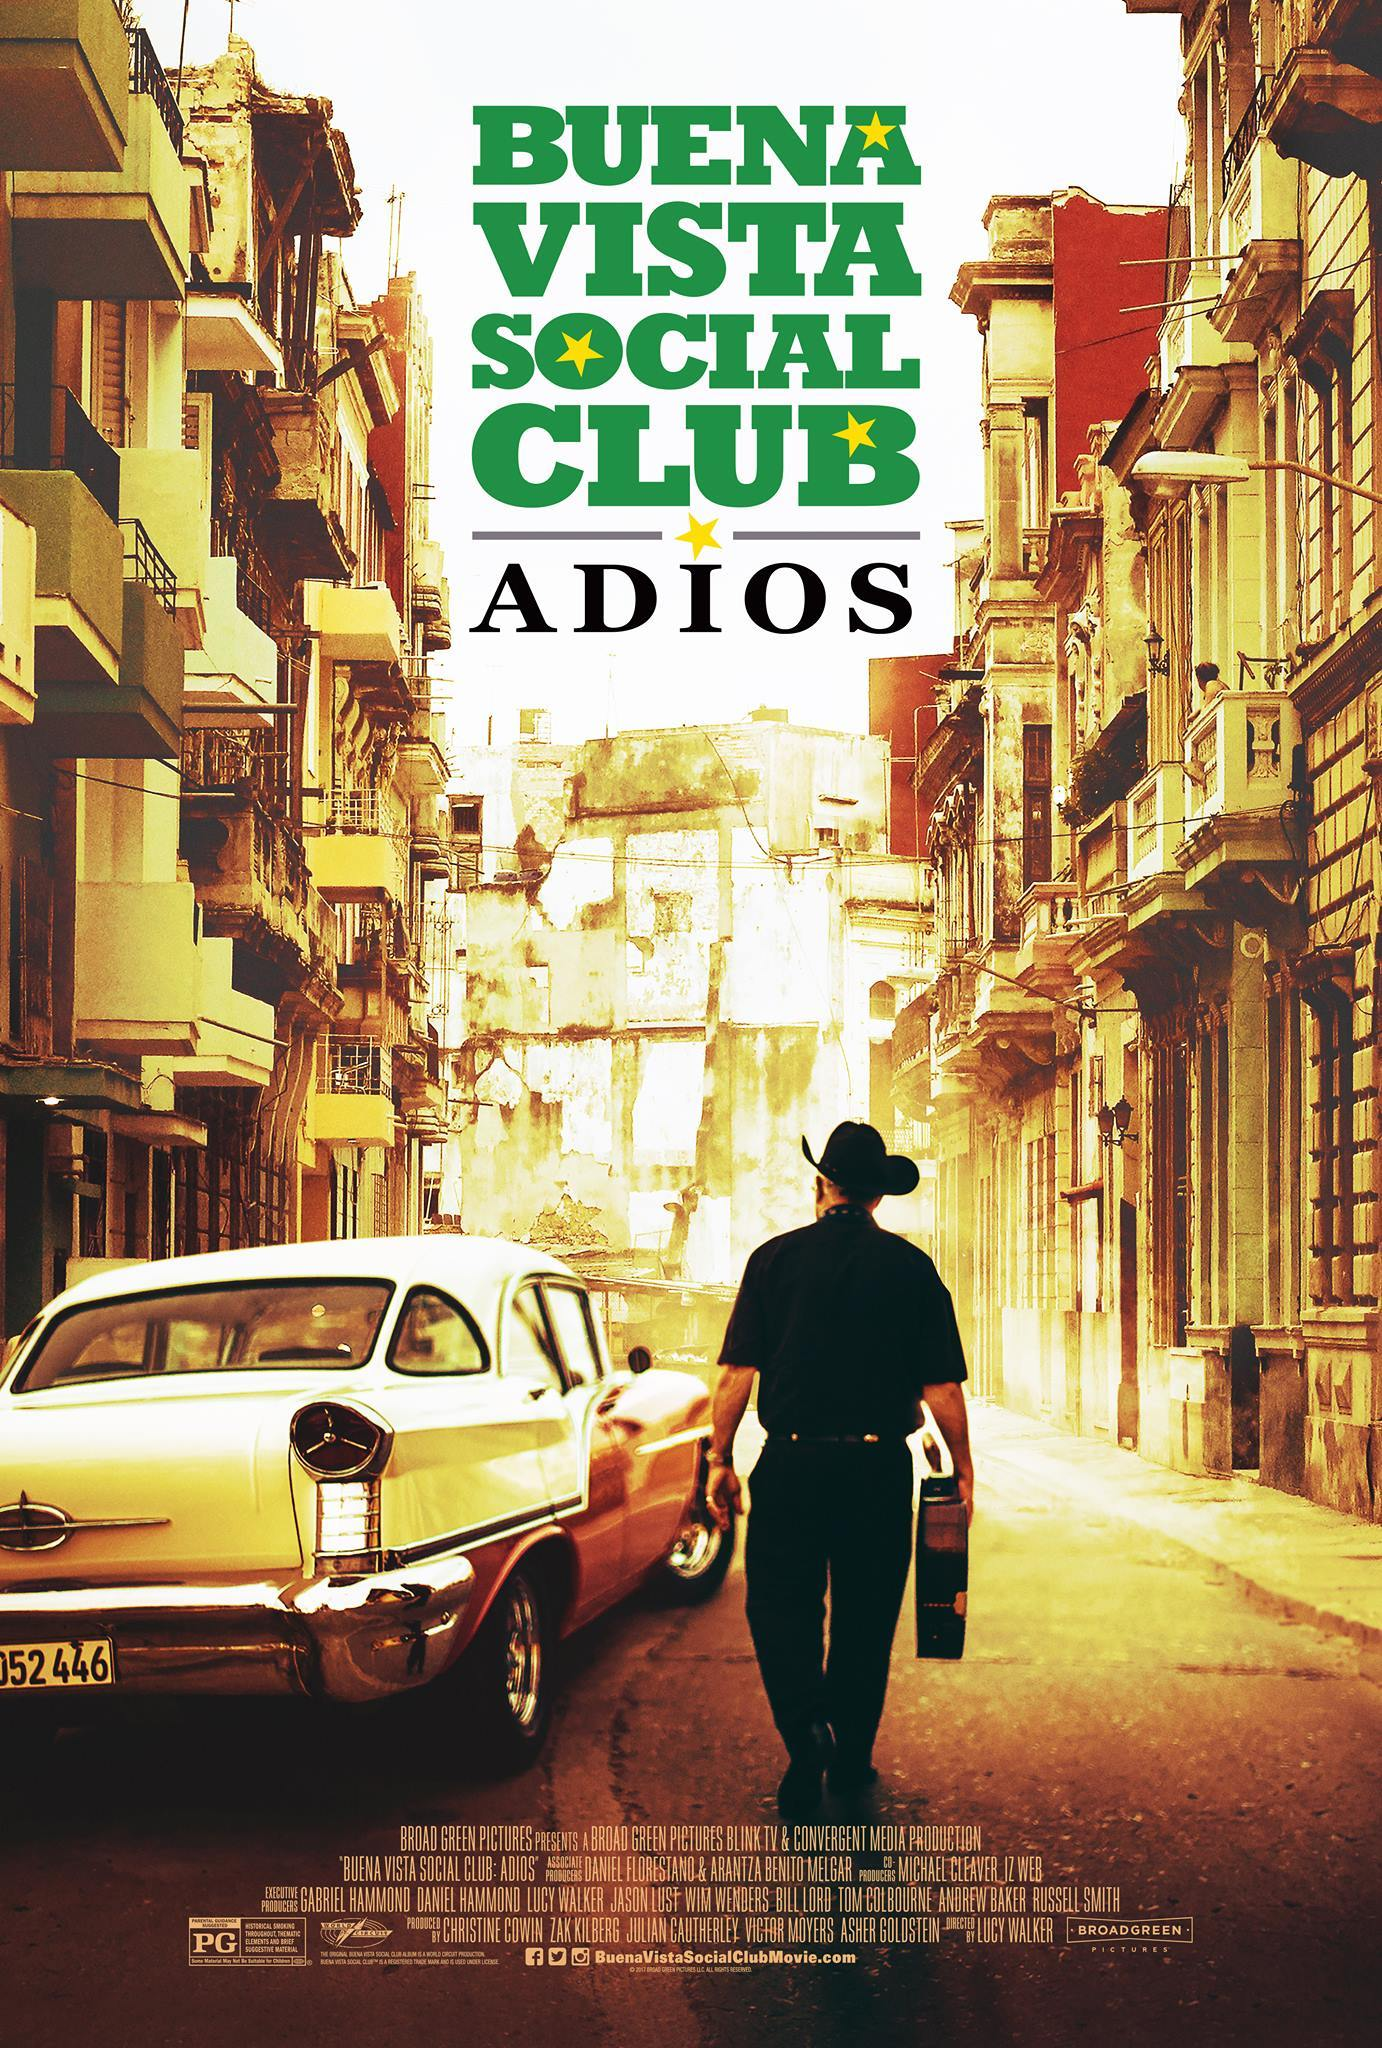 buena vista social club adios singapore movie screening